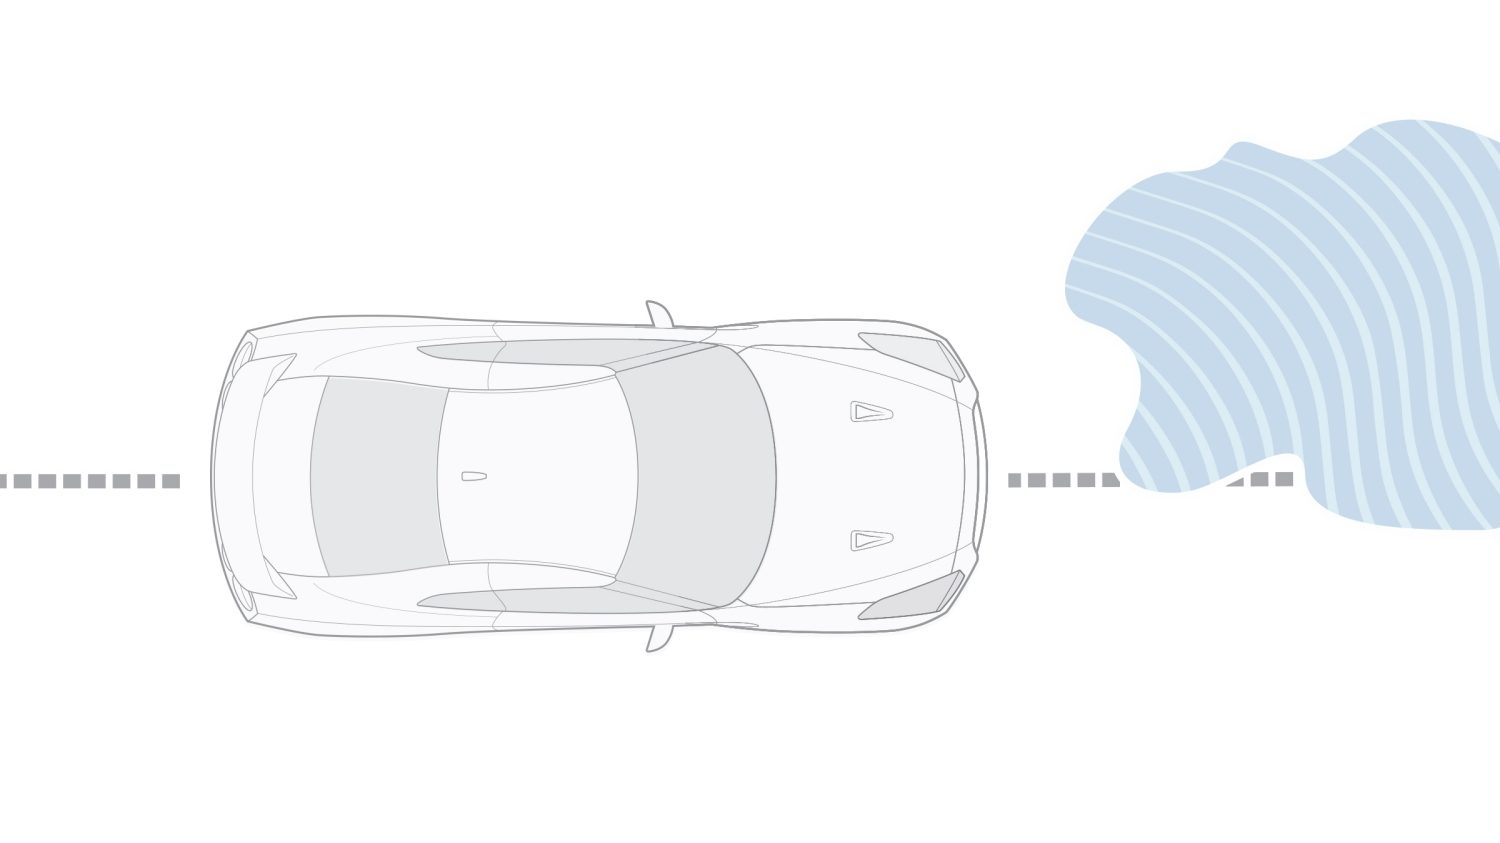 Nissan GT-R Traction Control System (TCS) illustration